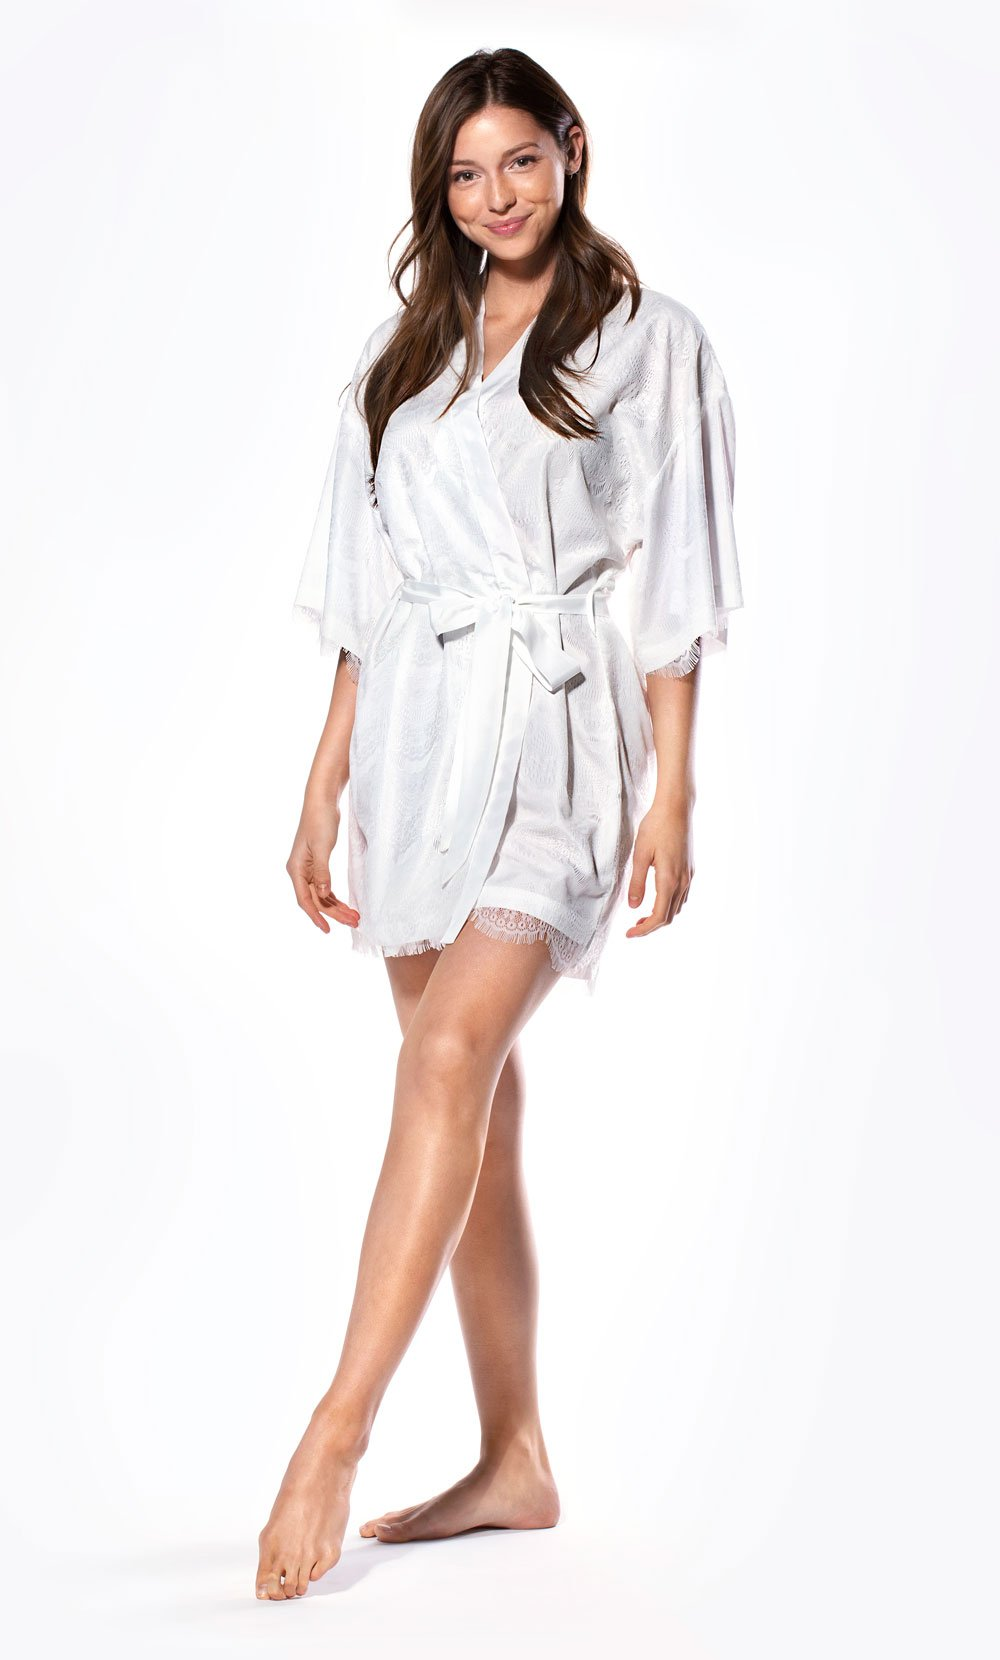 Satin and Lace Kimono Style Bride's Robe and Dressing Gown